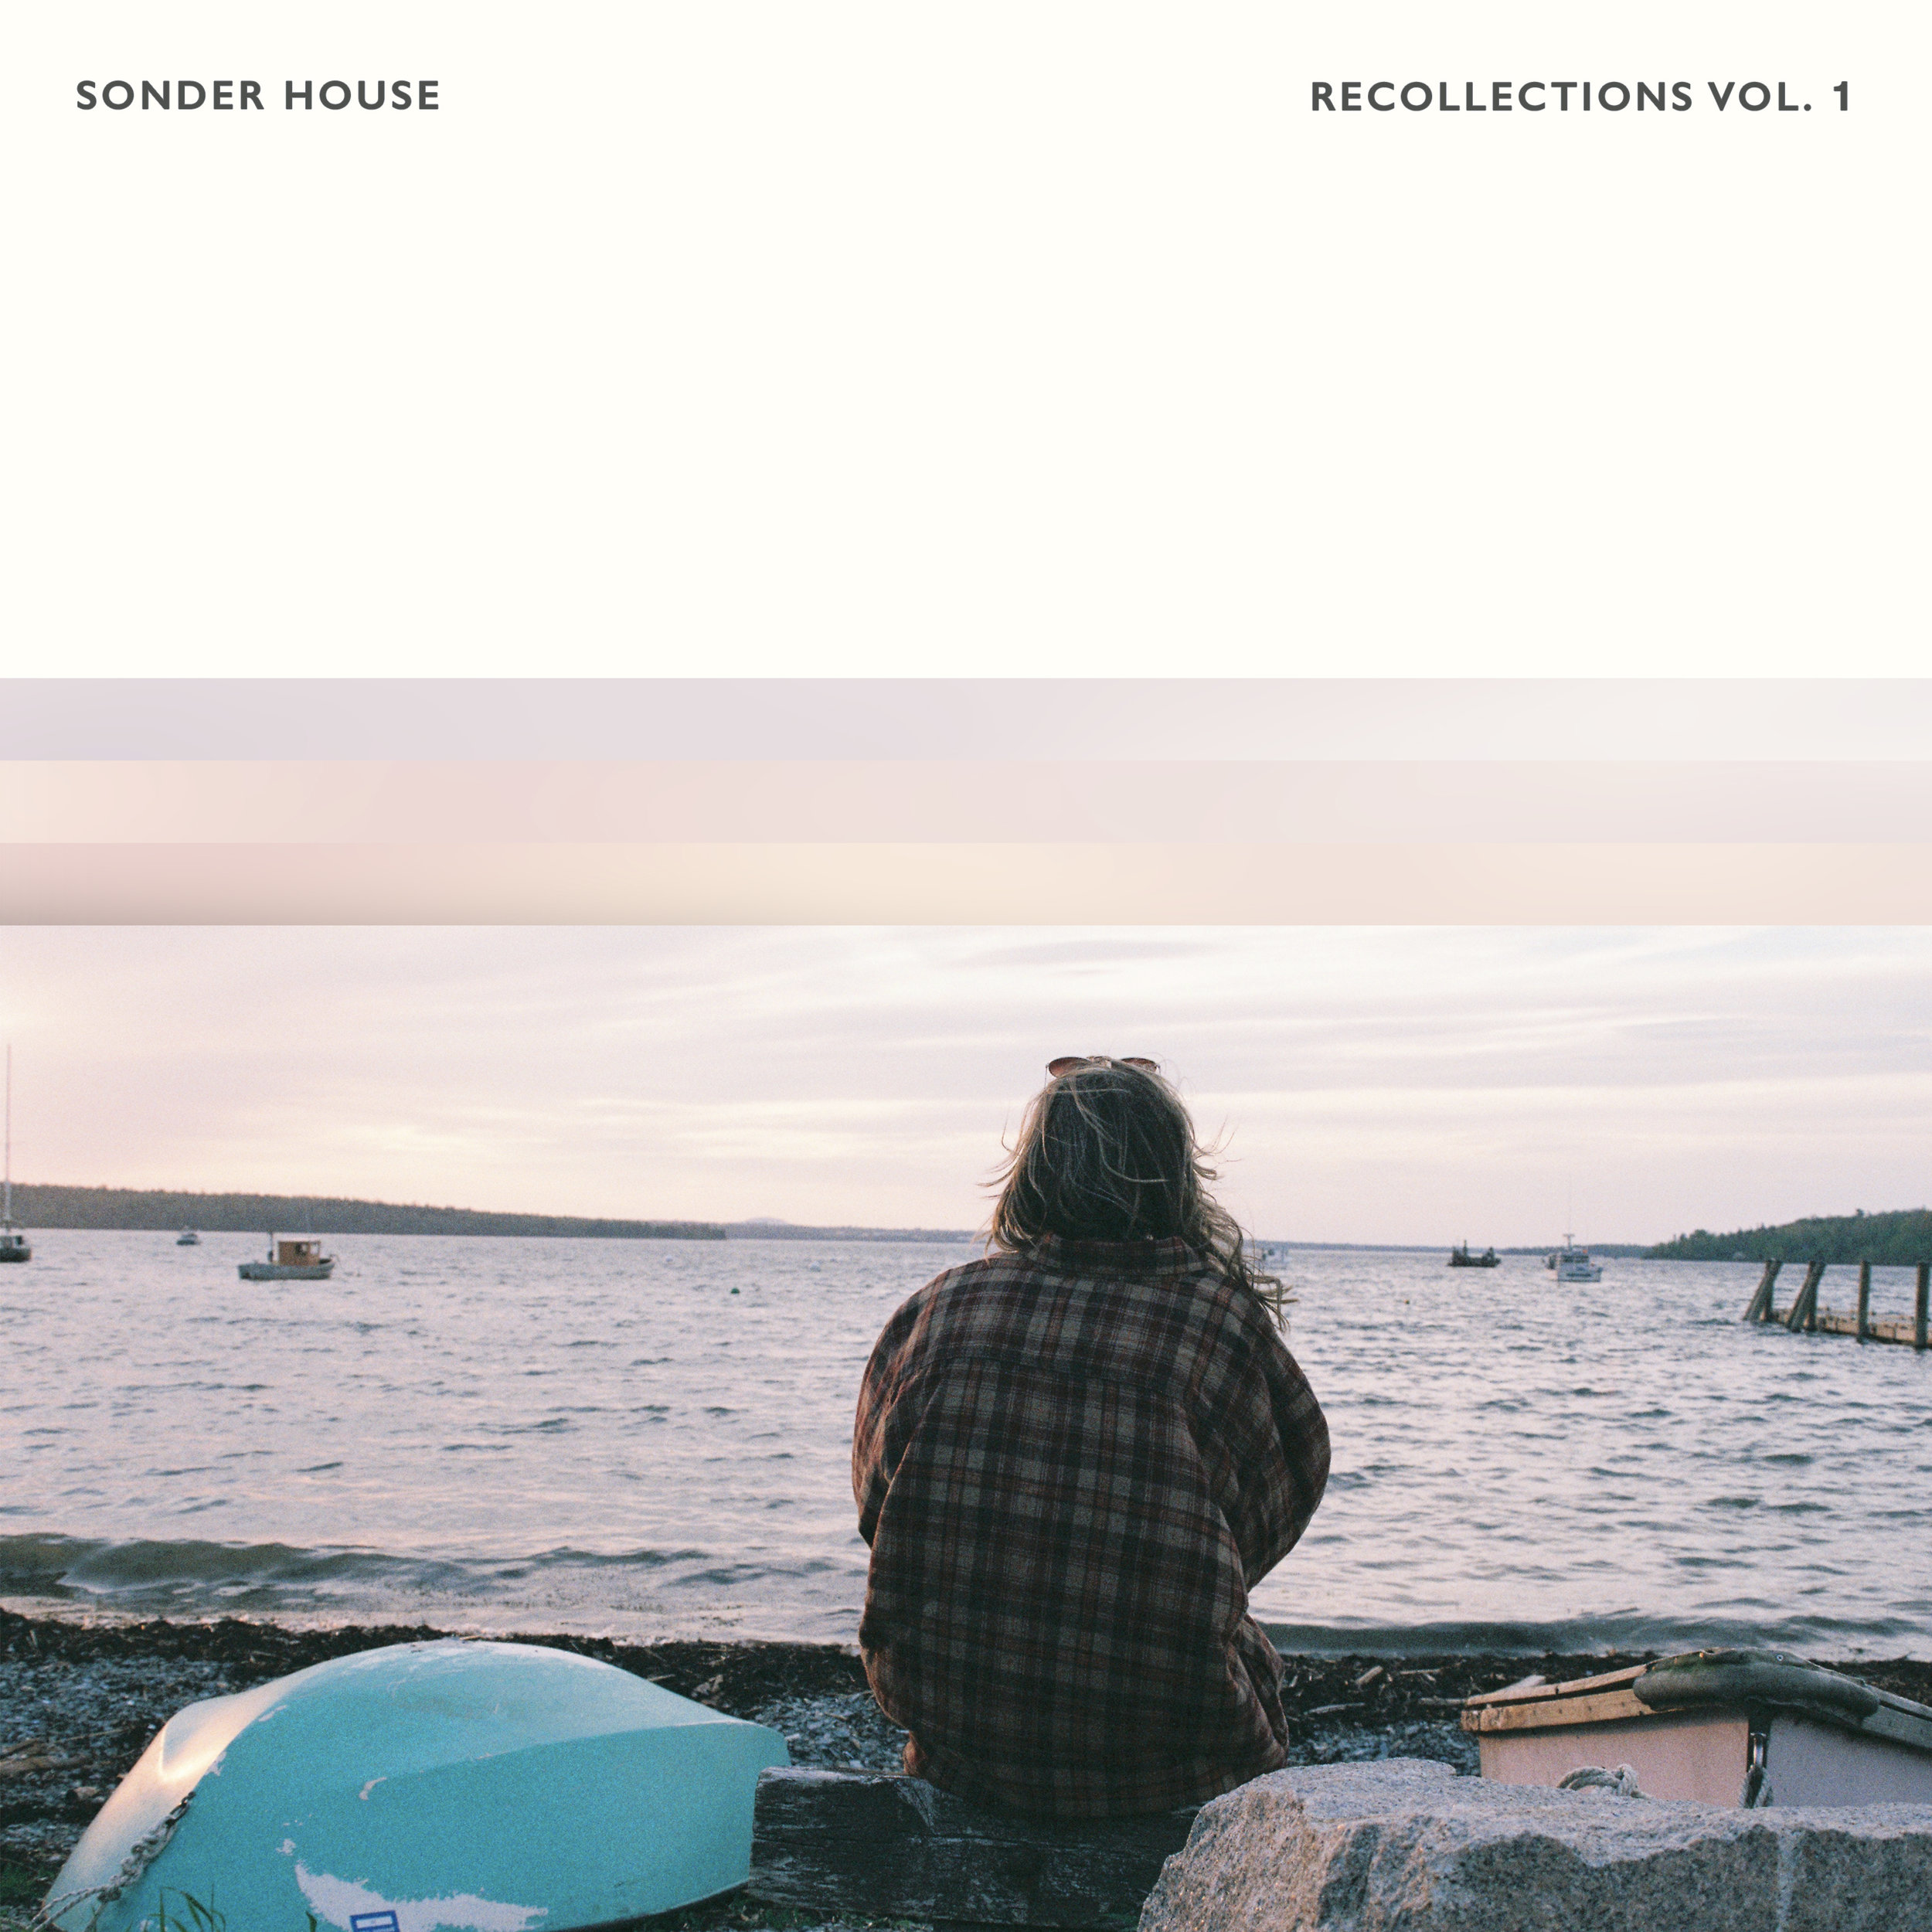 Sonder House - Recollections Vol. 1